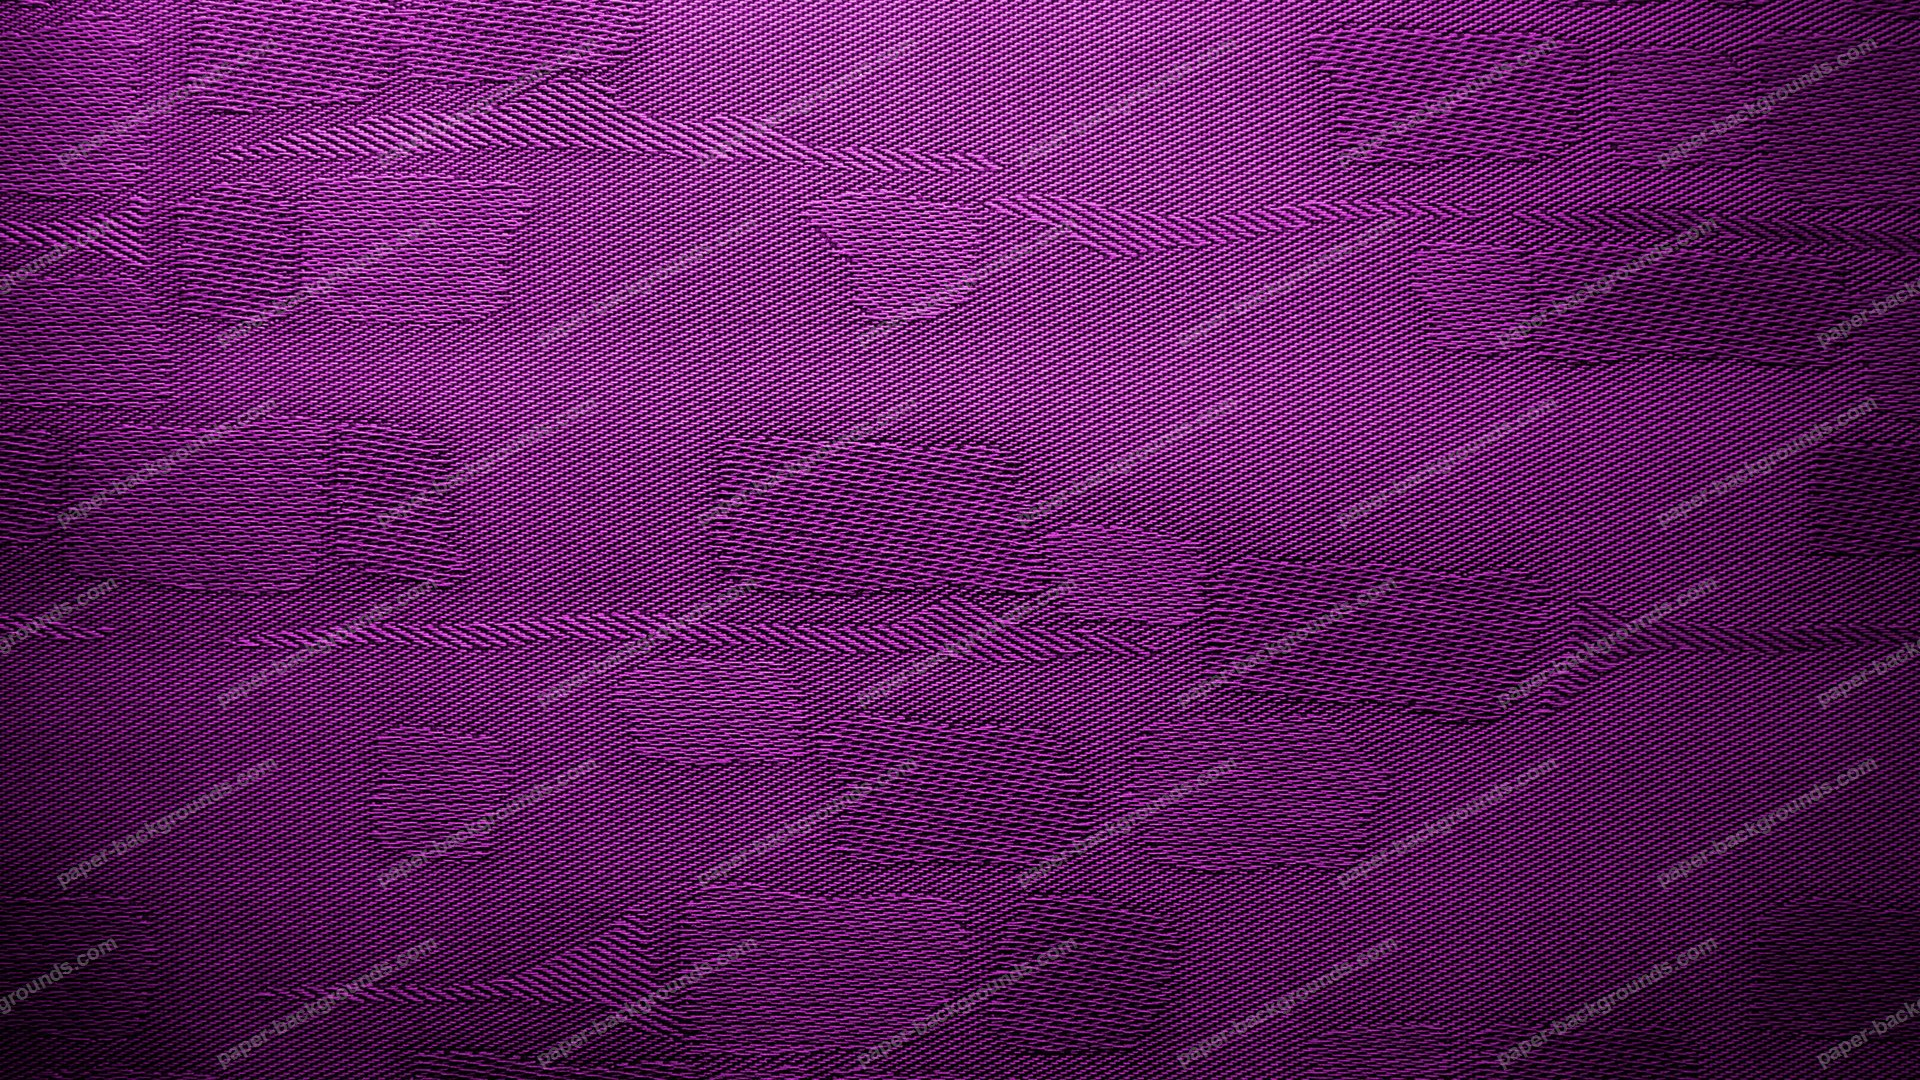 Violet Luxury Canvas Background HD 1920 x 1080p